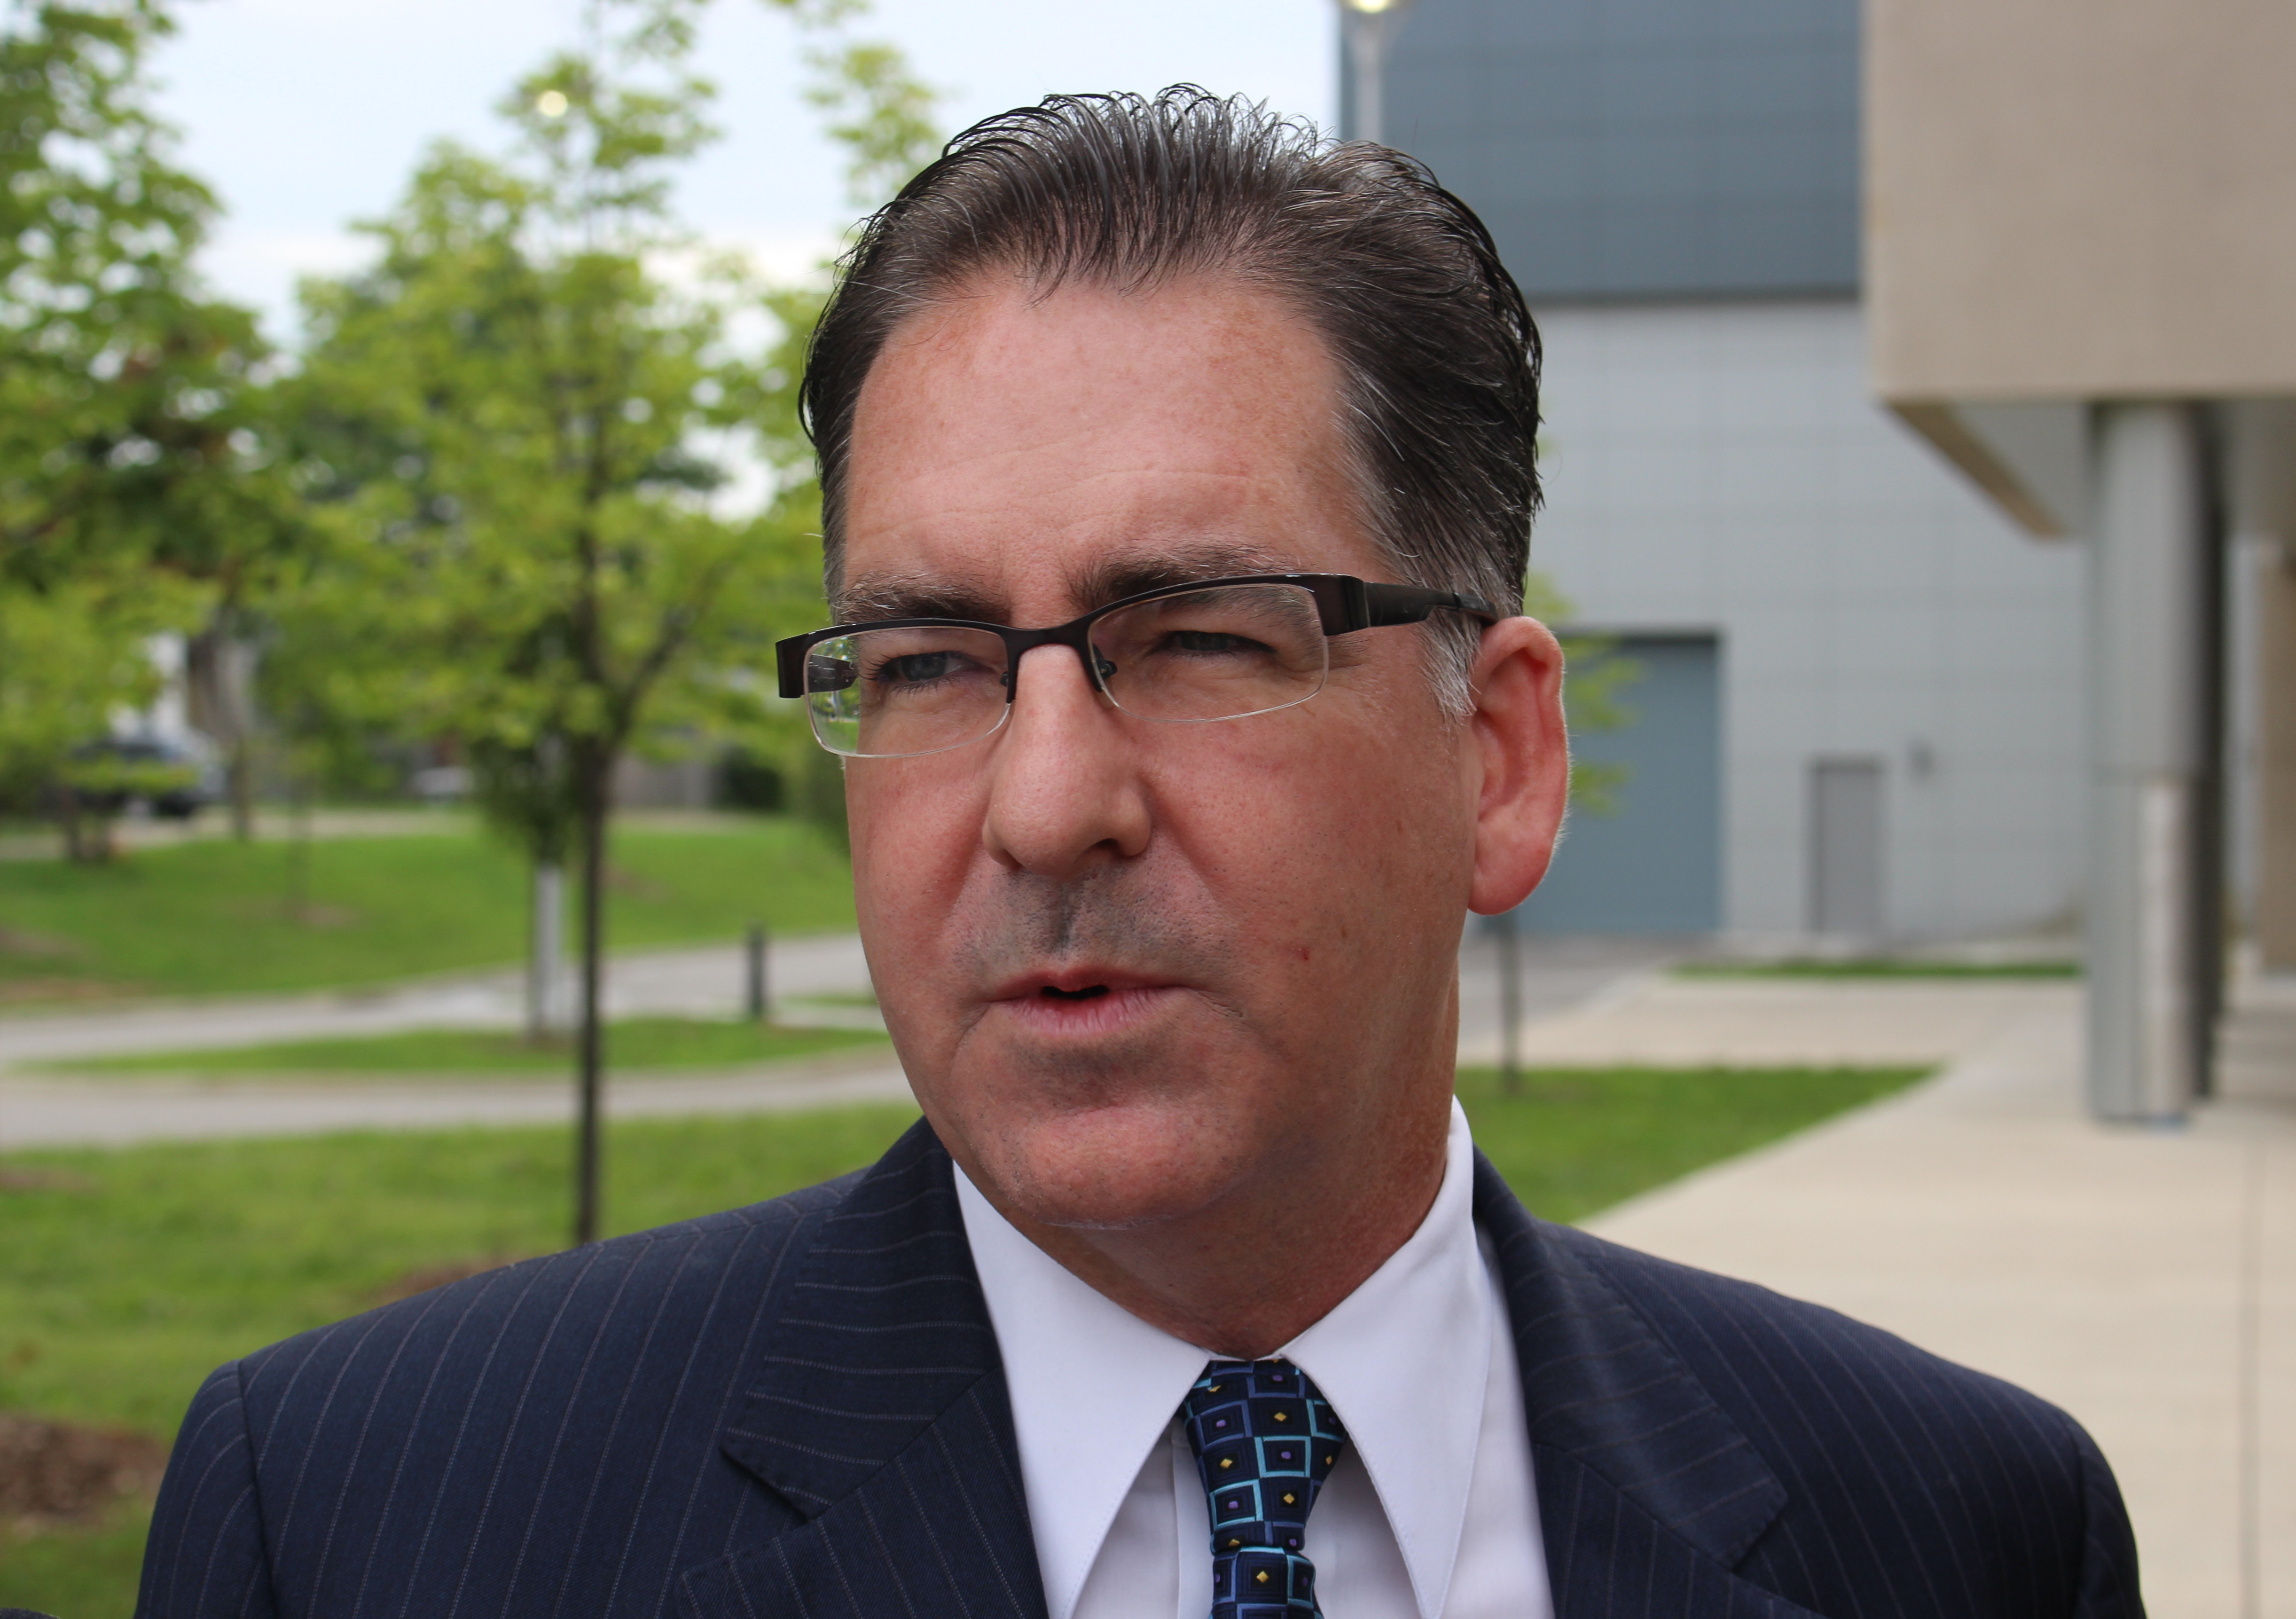 Windsor-West NDP MP Brian Masse speaks to the media out front of the University of Windsors Centre For Engineering and Innovation, September 9, 2015. (Photo by Mike Vlasveld)